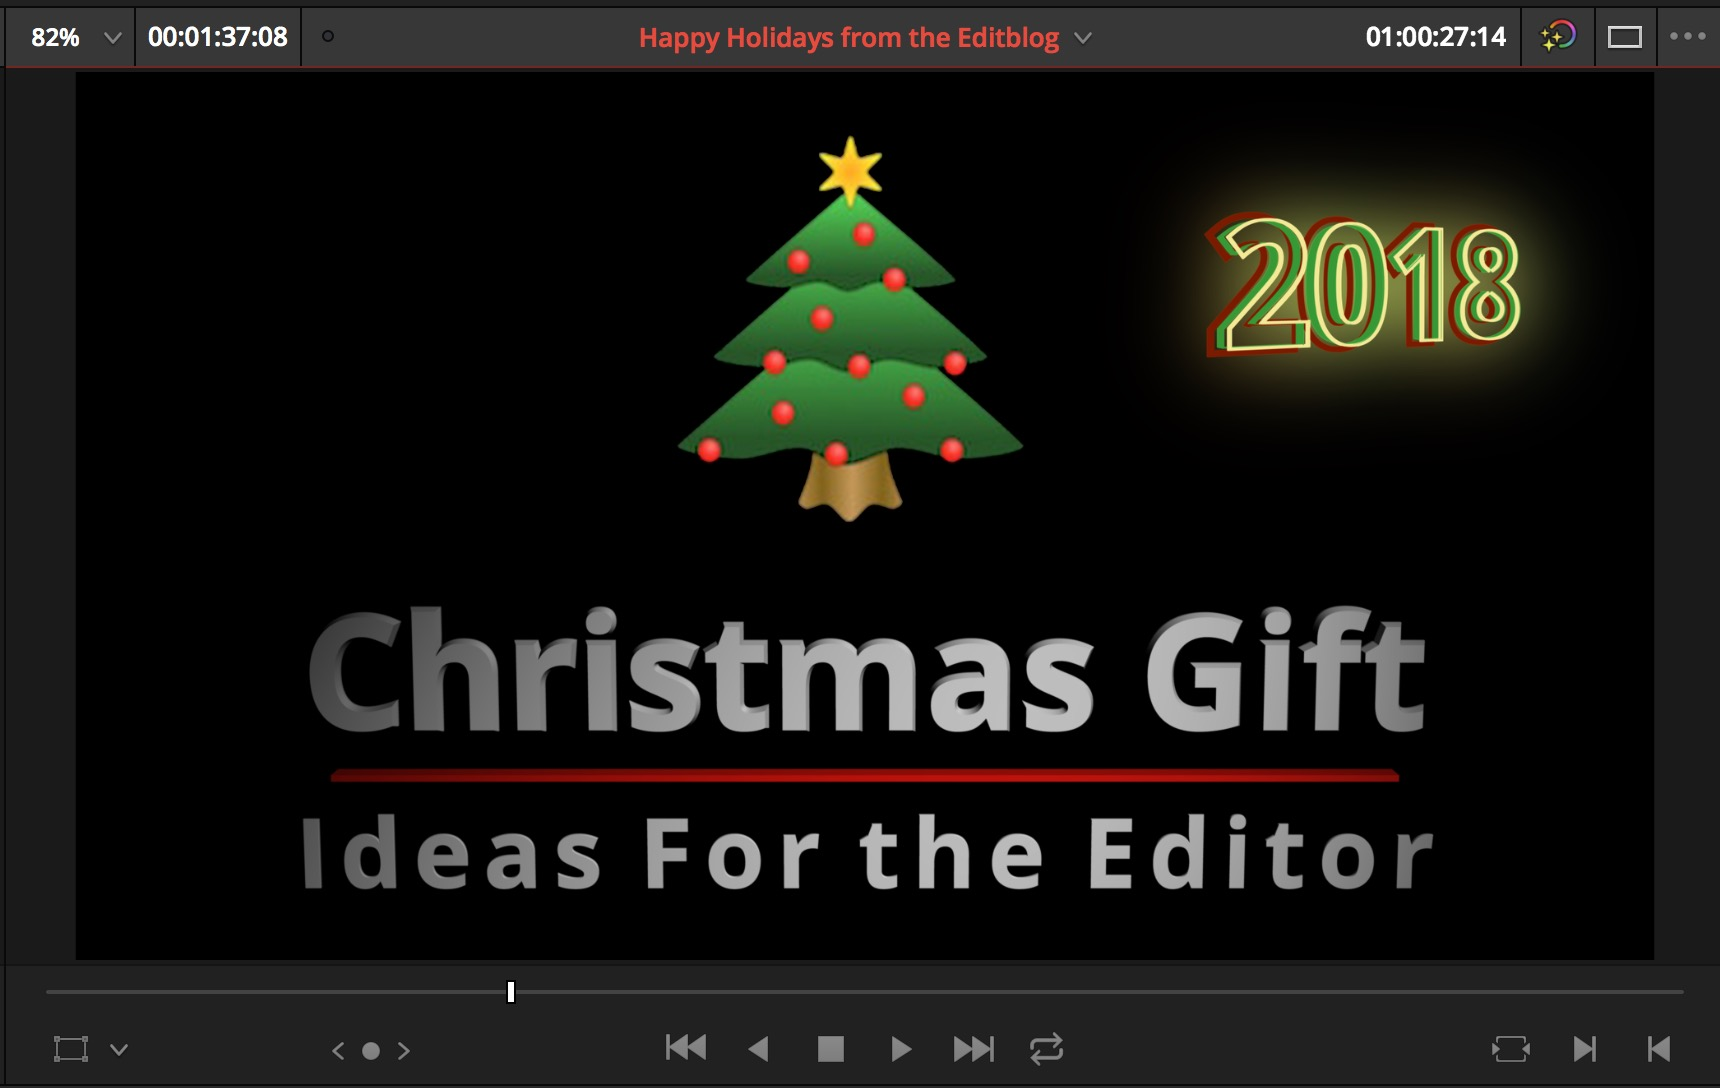 Christmas Gift Ideas for the Editor - 2018 Edition 26